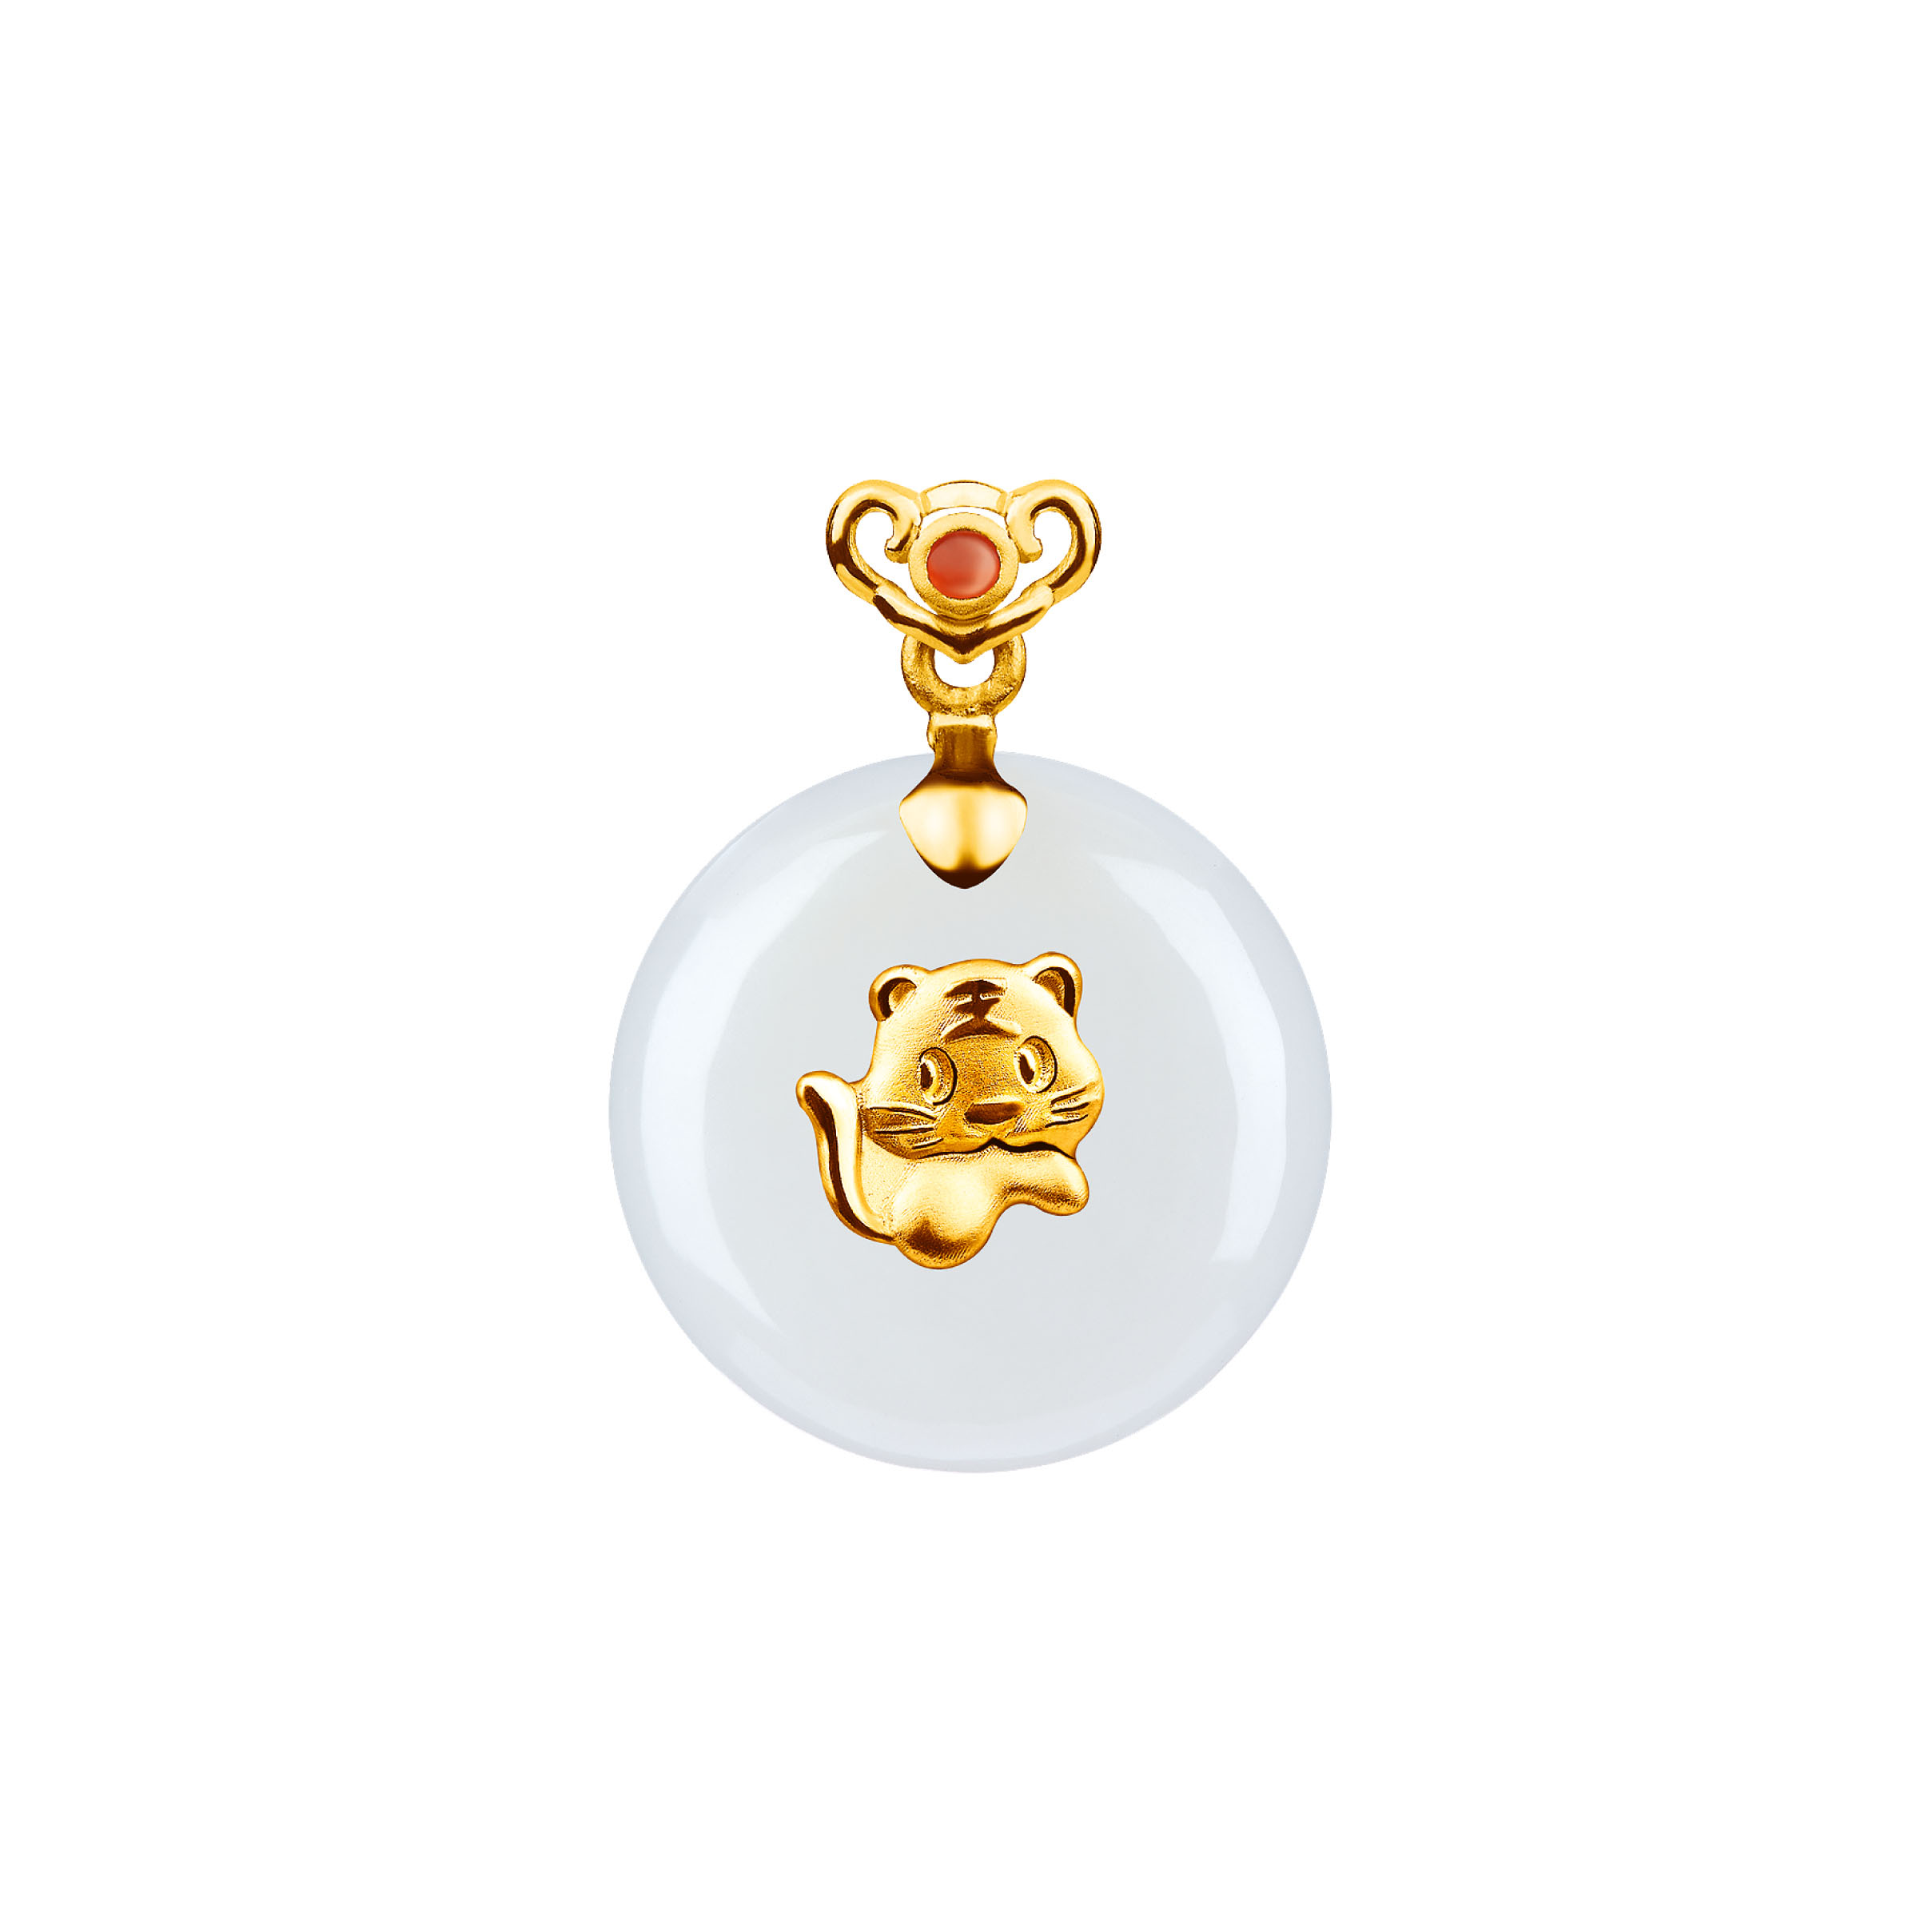 12 Chinese Zodiac Gold Pendant with Nephrite-Tiger